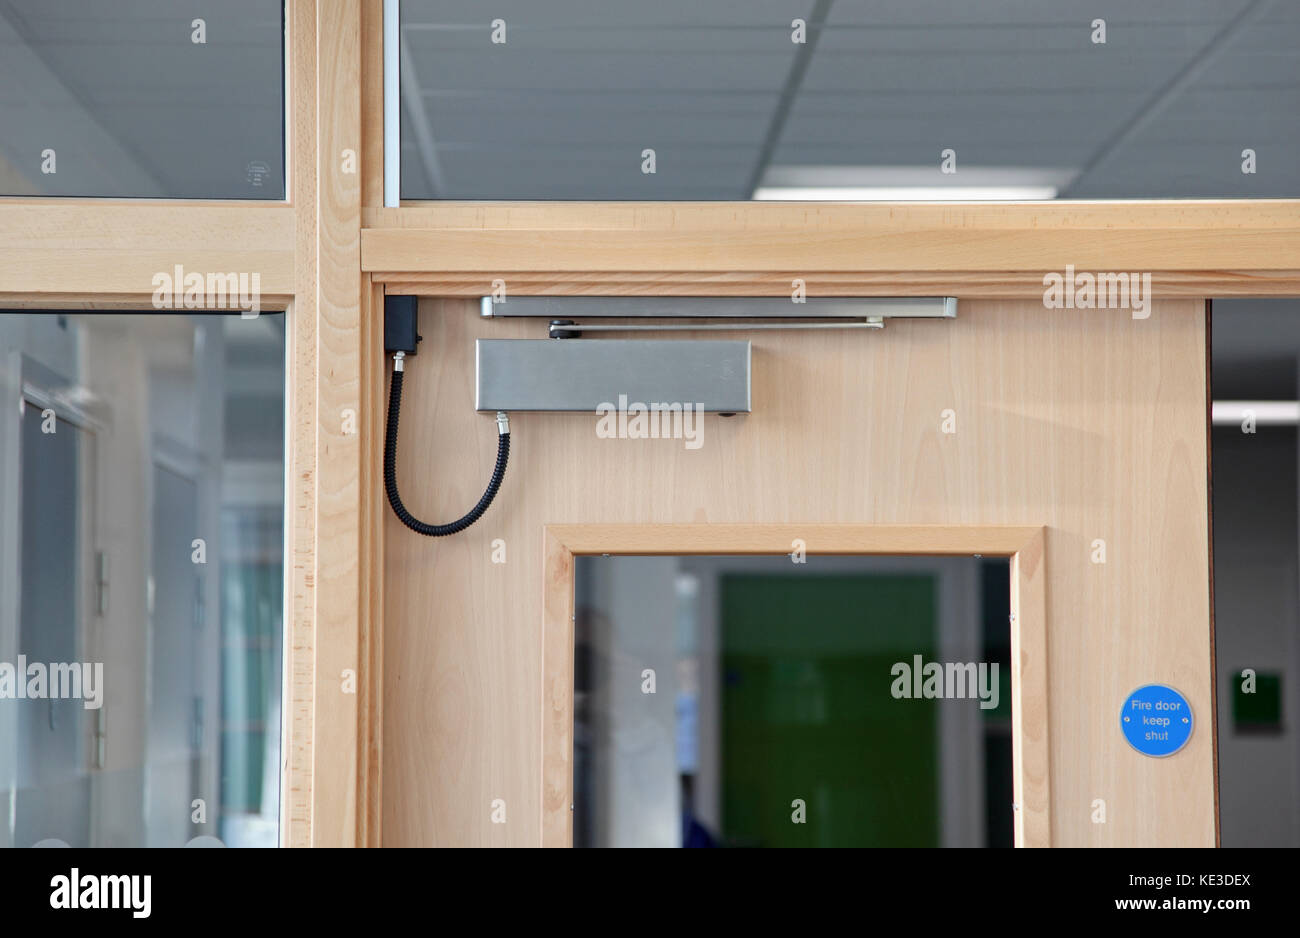 Close-up of an electronically operated, magnetic fire door closer on interior doors in a UK college building. - Stock Image